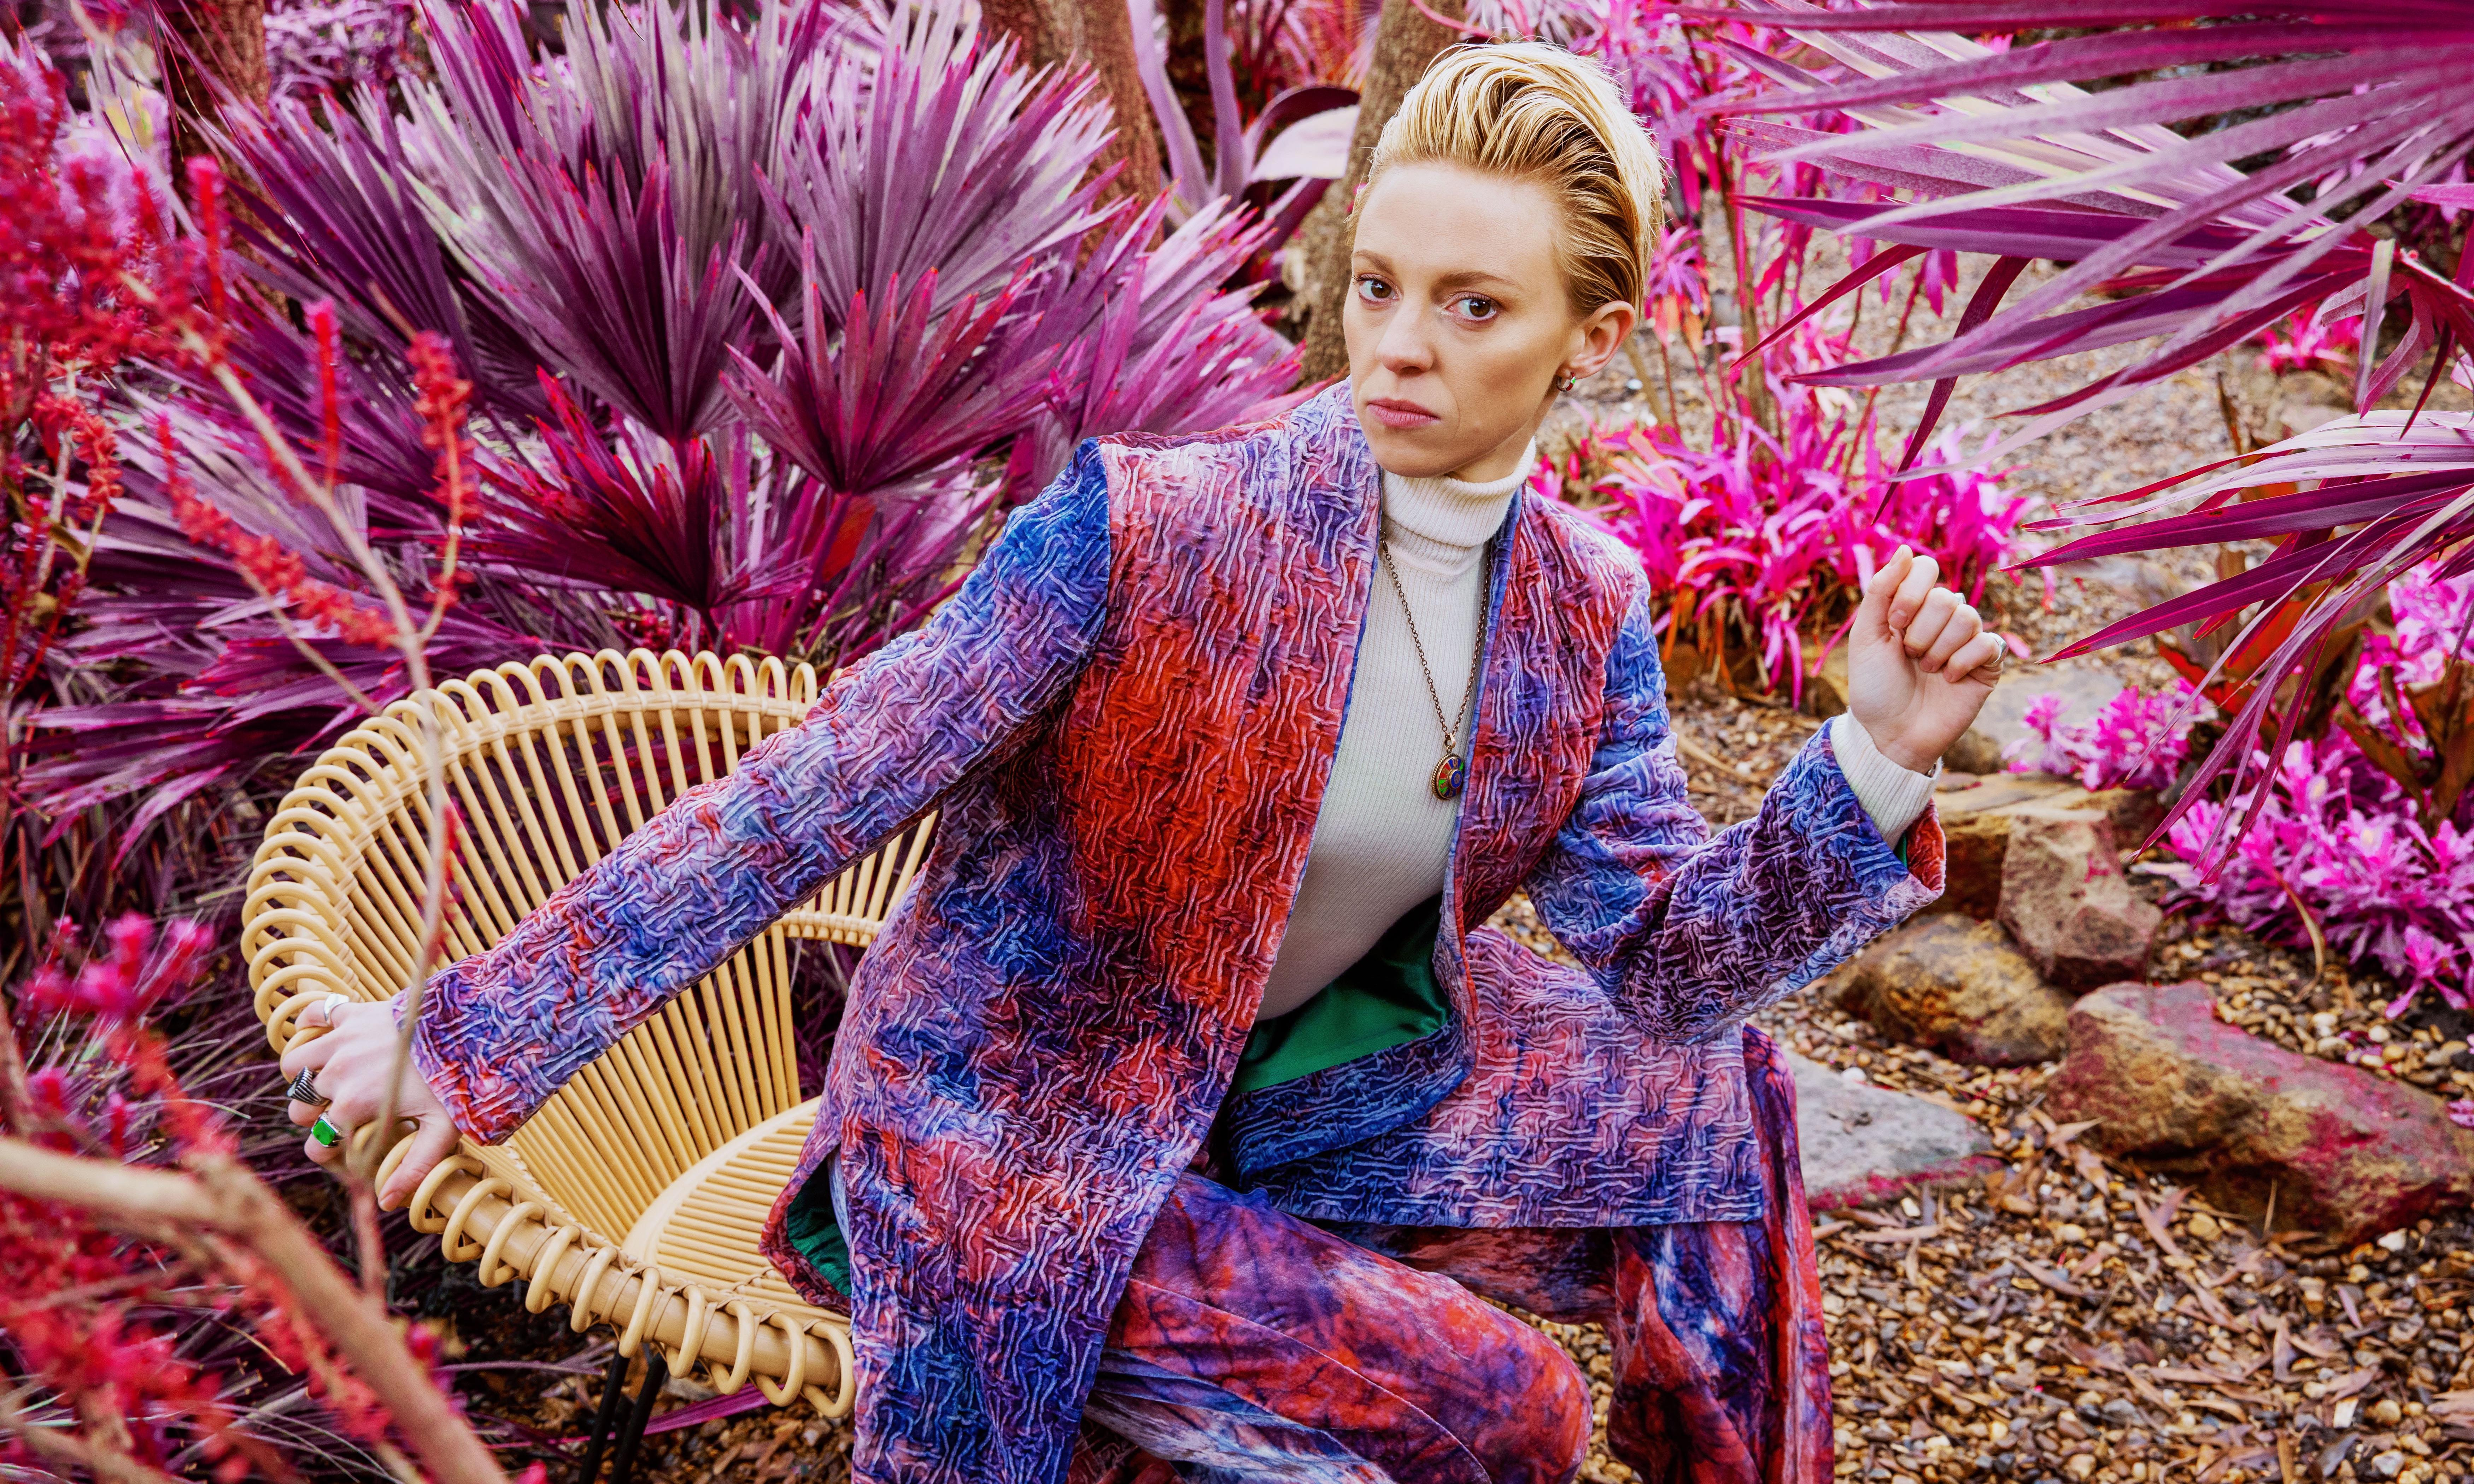 La Roux: Supervision review – obliquely beautiful, contrarian electro visionary